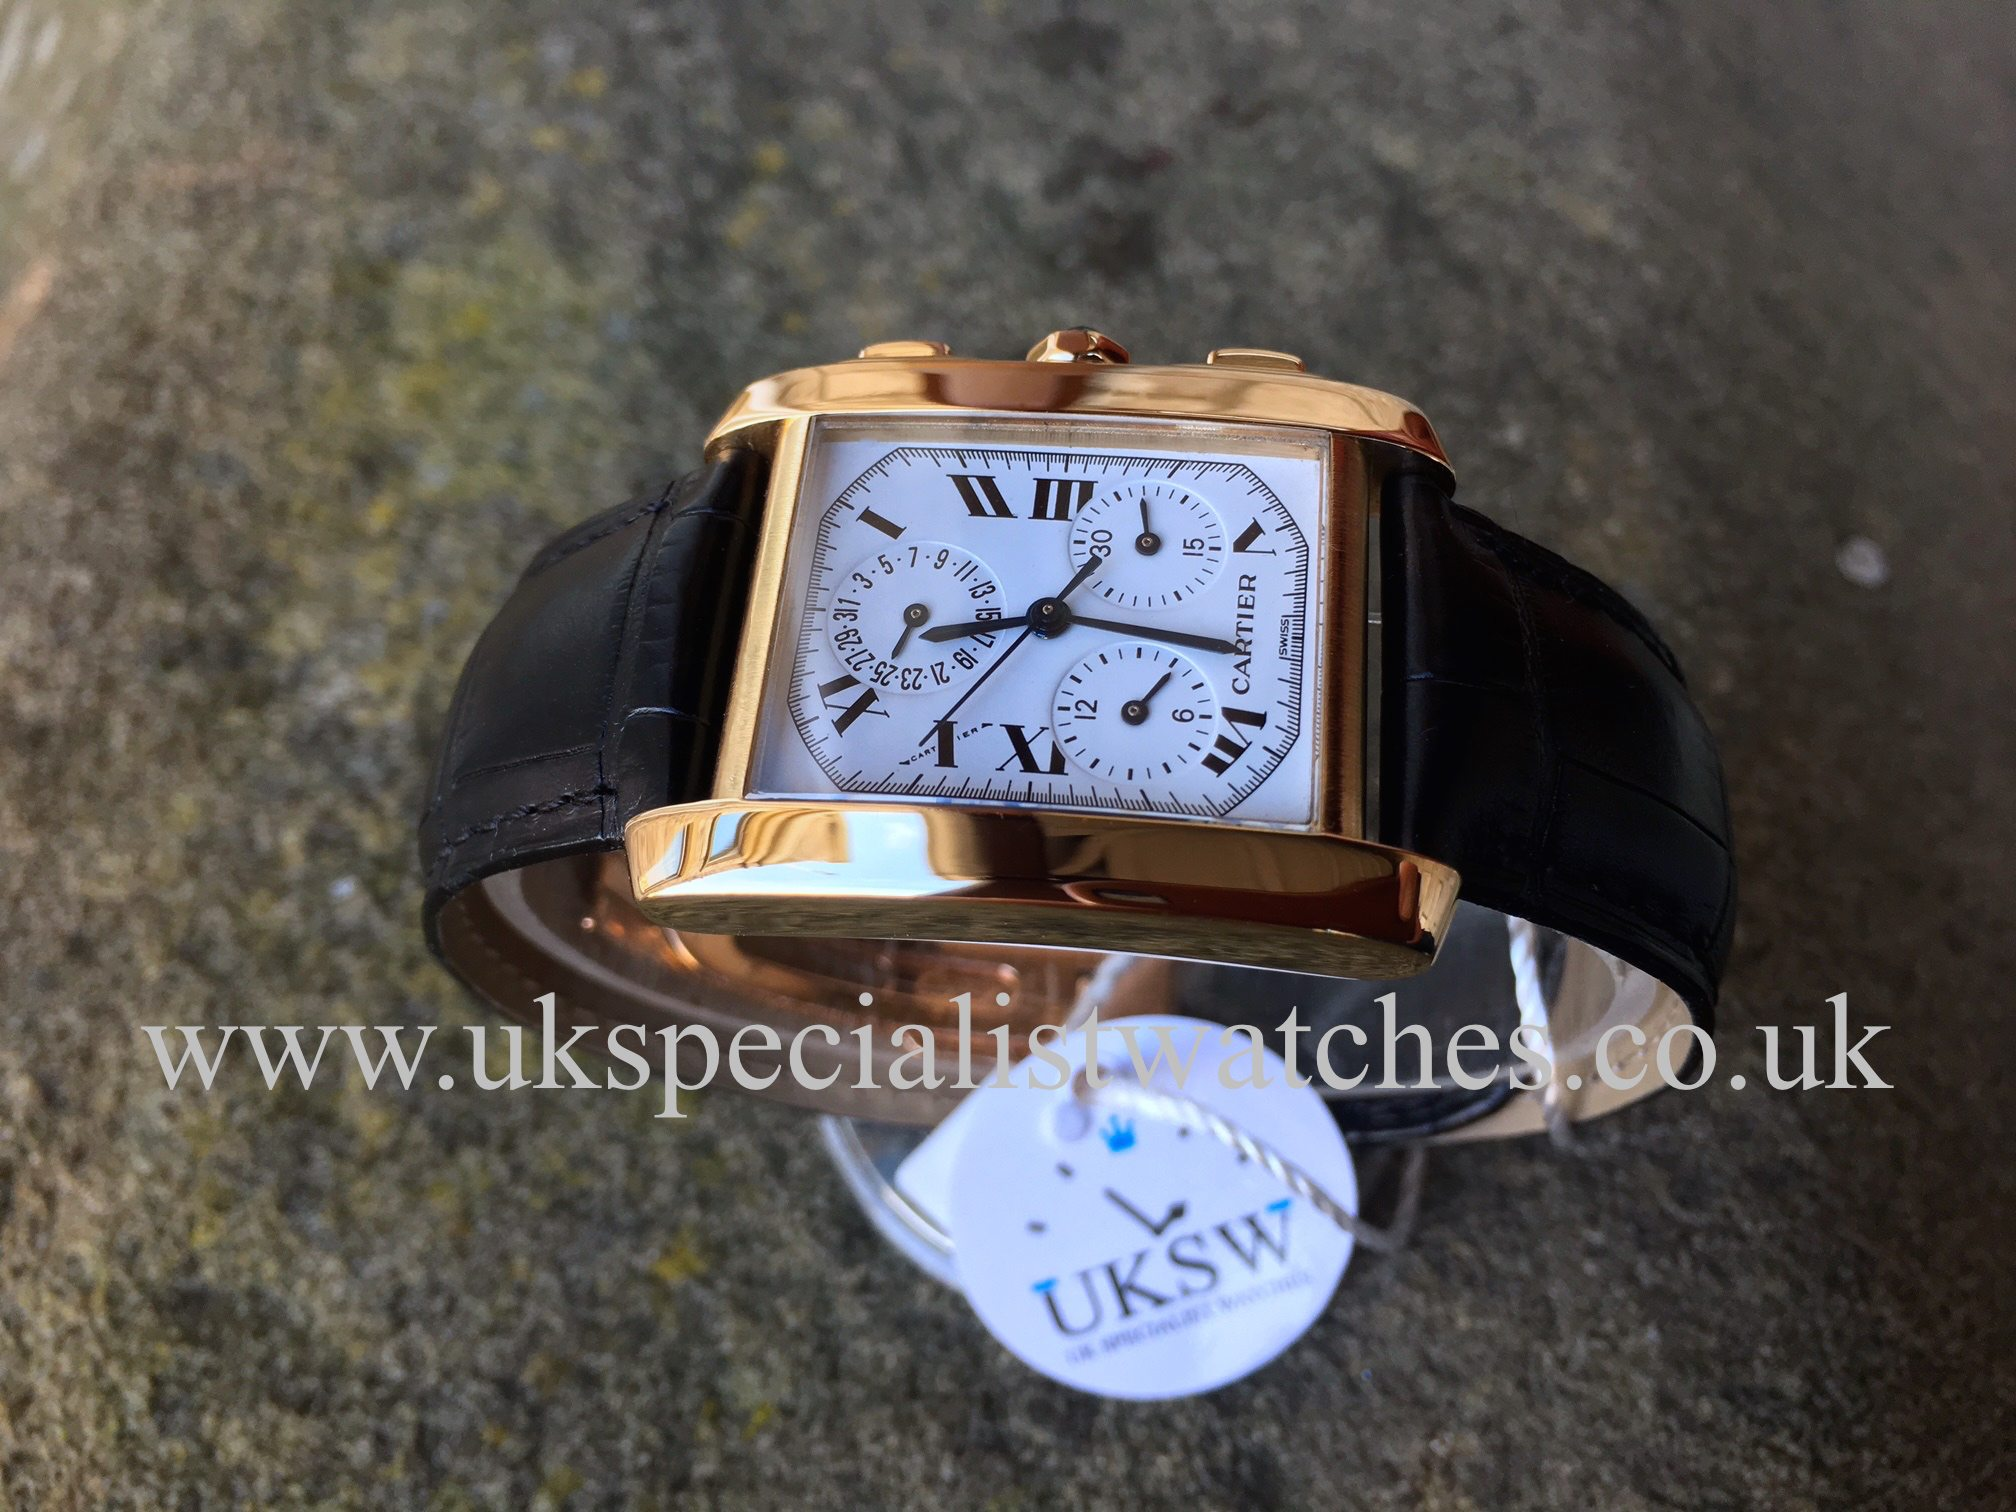 b33a16816a36 UK Specialist Watches have an 18ct Gold Cartier Tank Francaise chronograph  with a white dial -